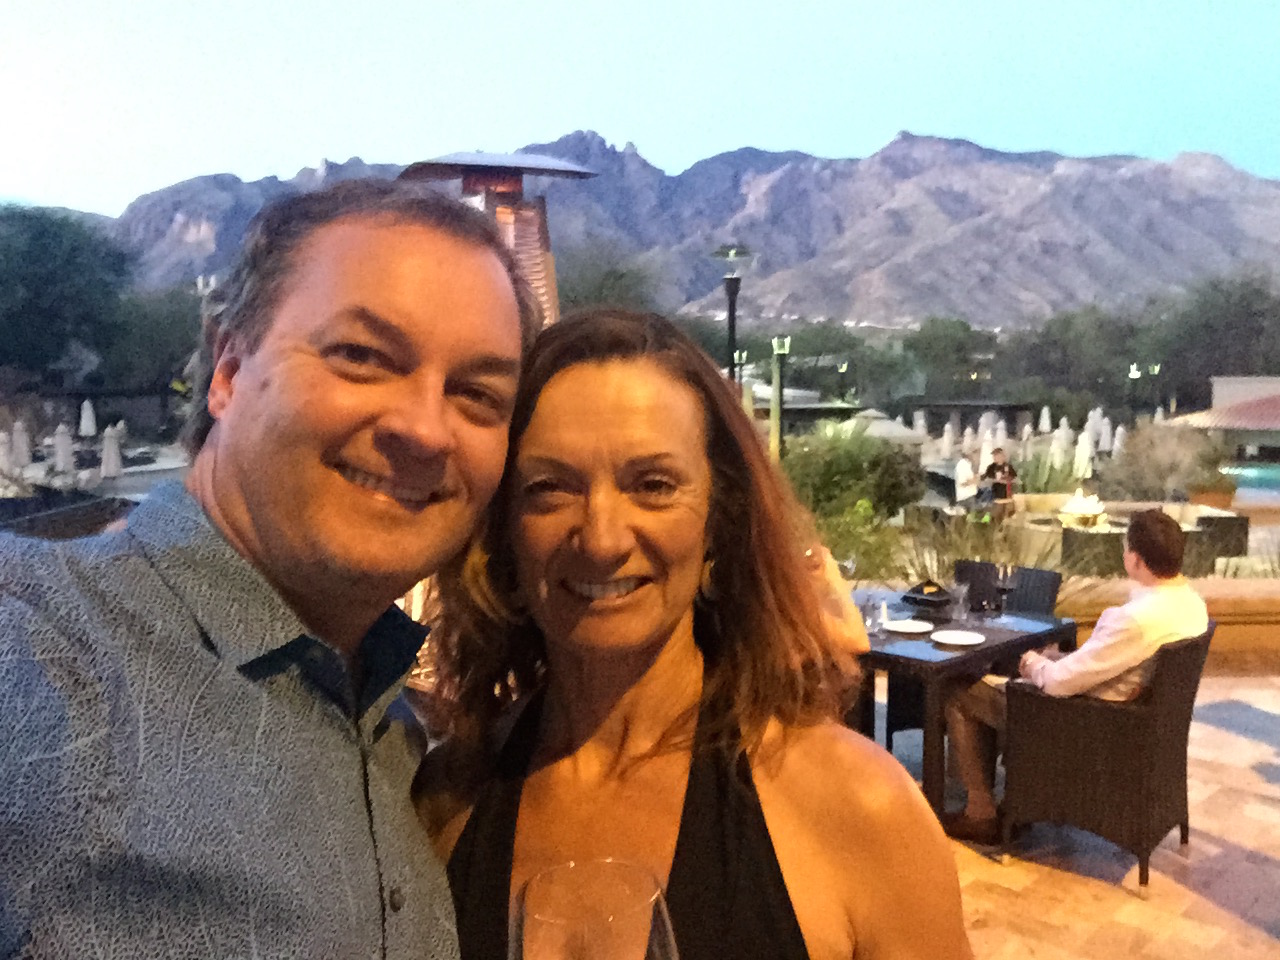 After a beautiful morning, Rick and I went to the Westin for diner on the terrace with views of the Santa Catalina Mountains.